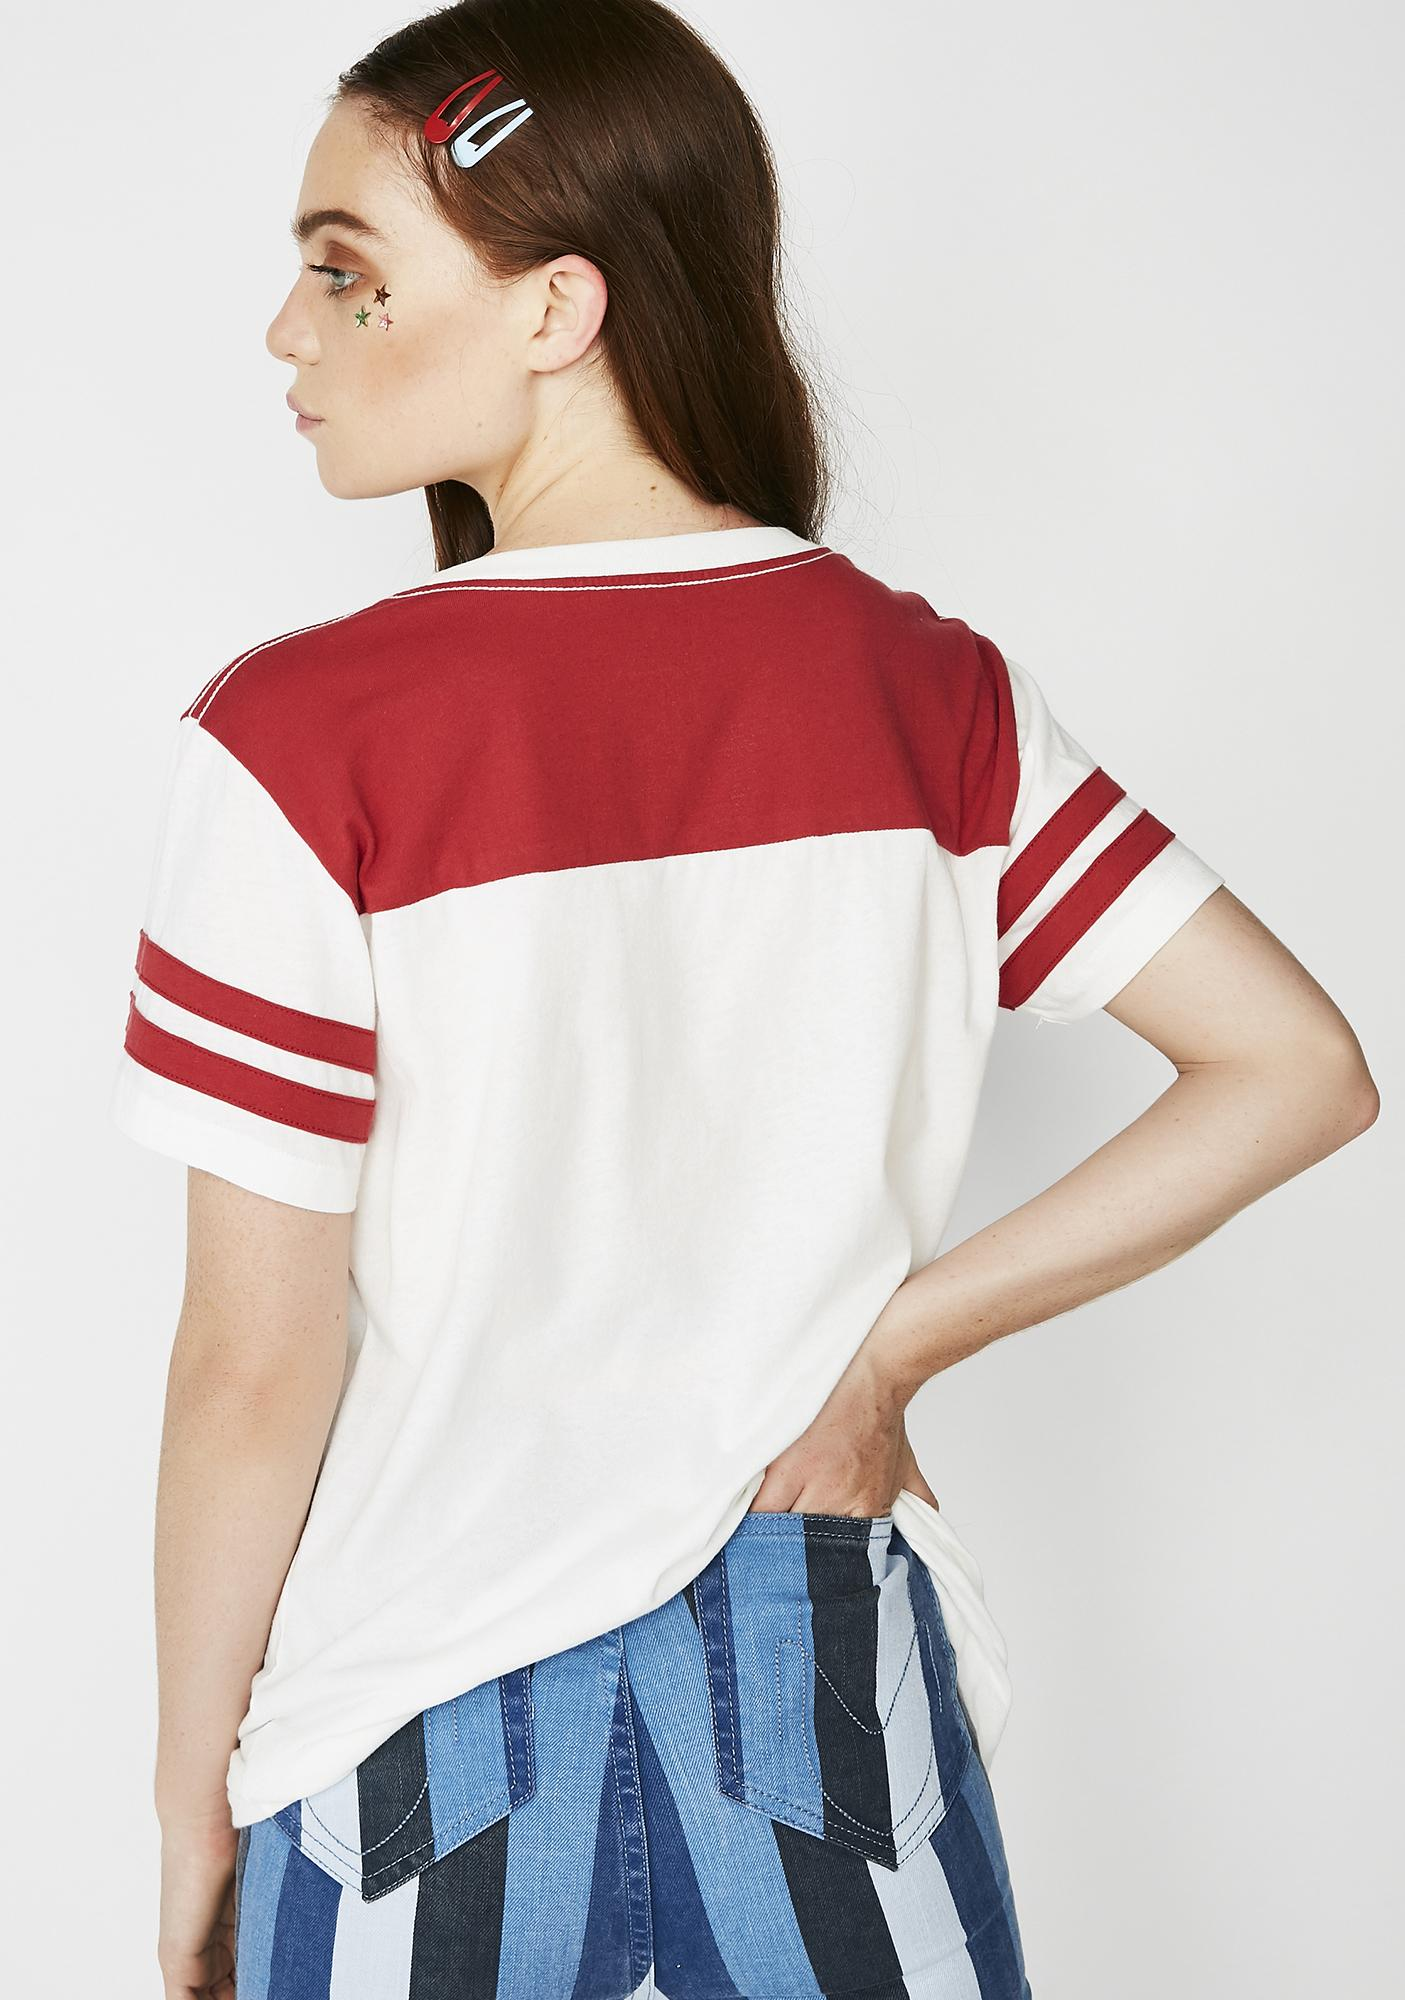 Desert Dreamer Thank You Color Block Jersey Tee